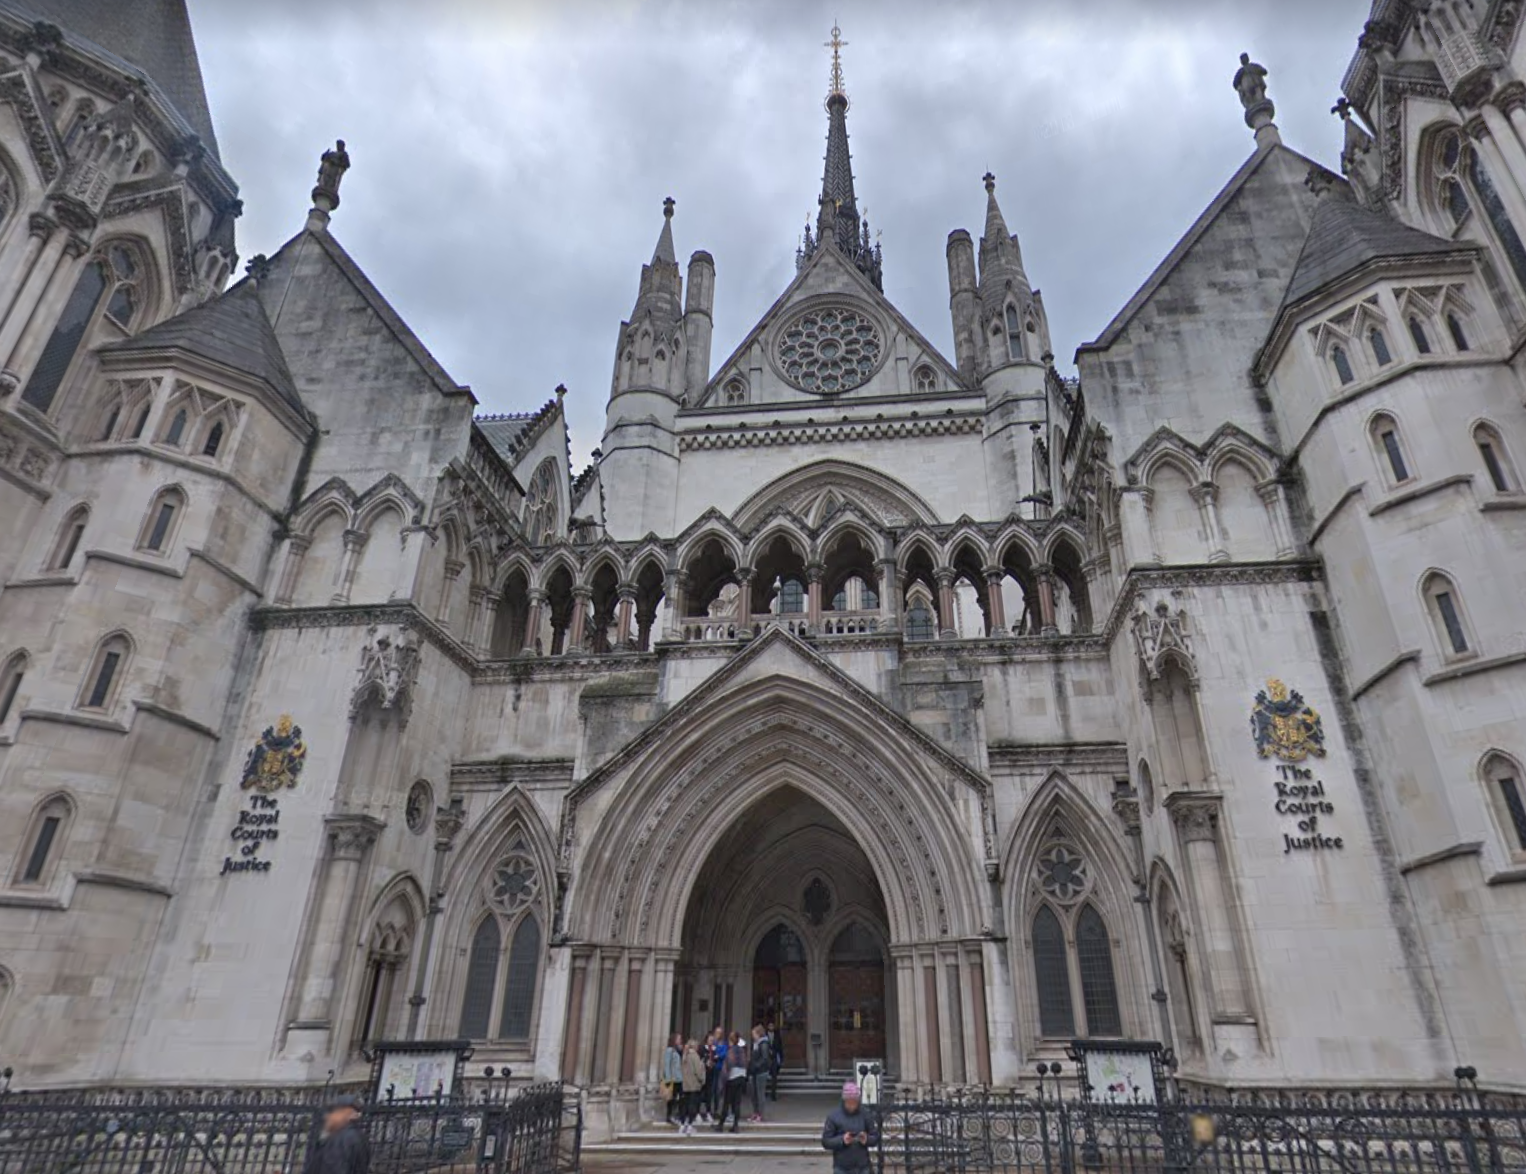 The Family Division of the Court of Appeals in London (Source: Google Maps)